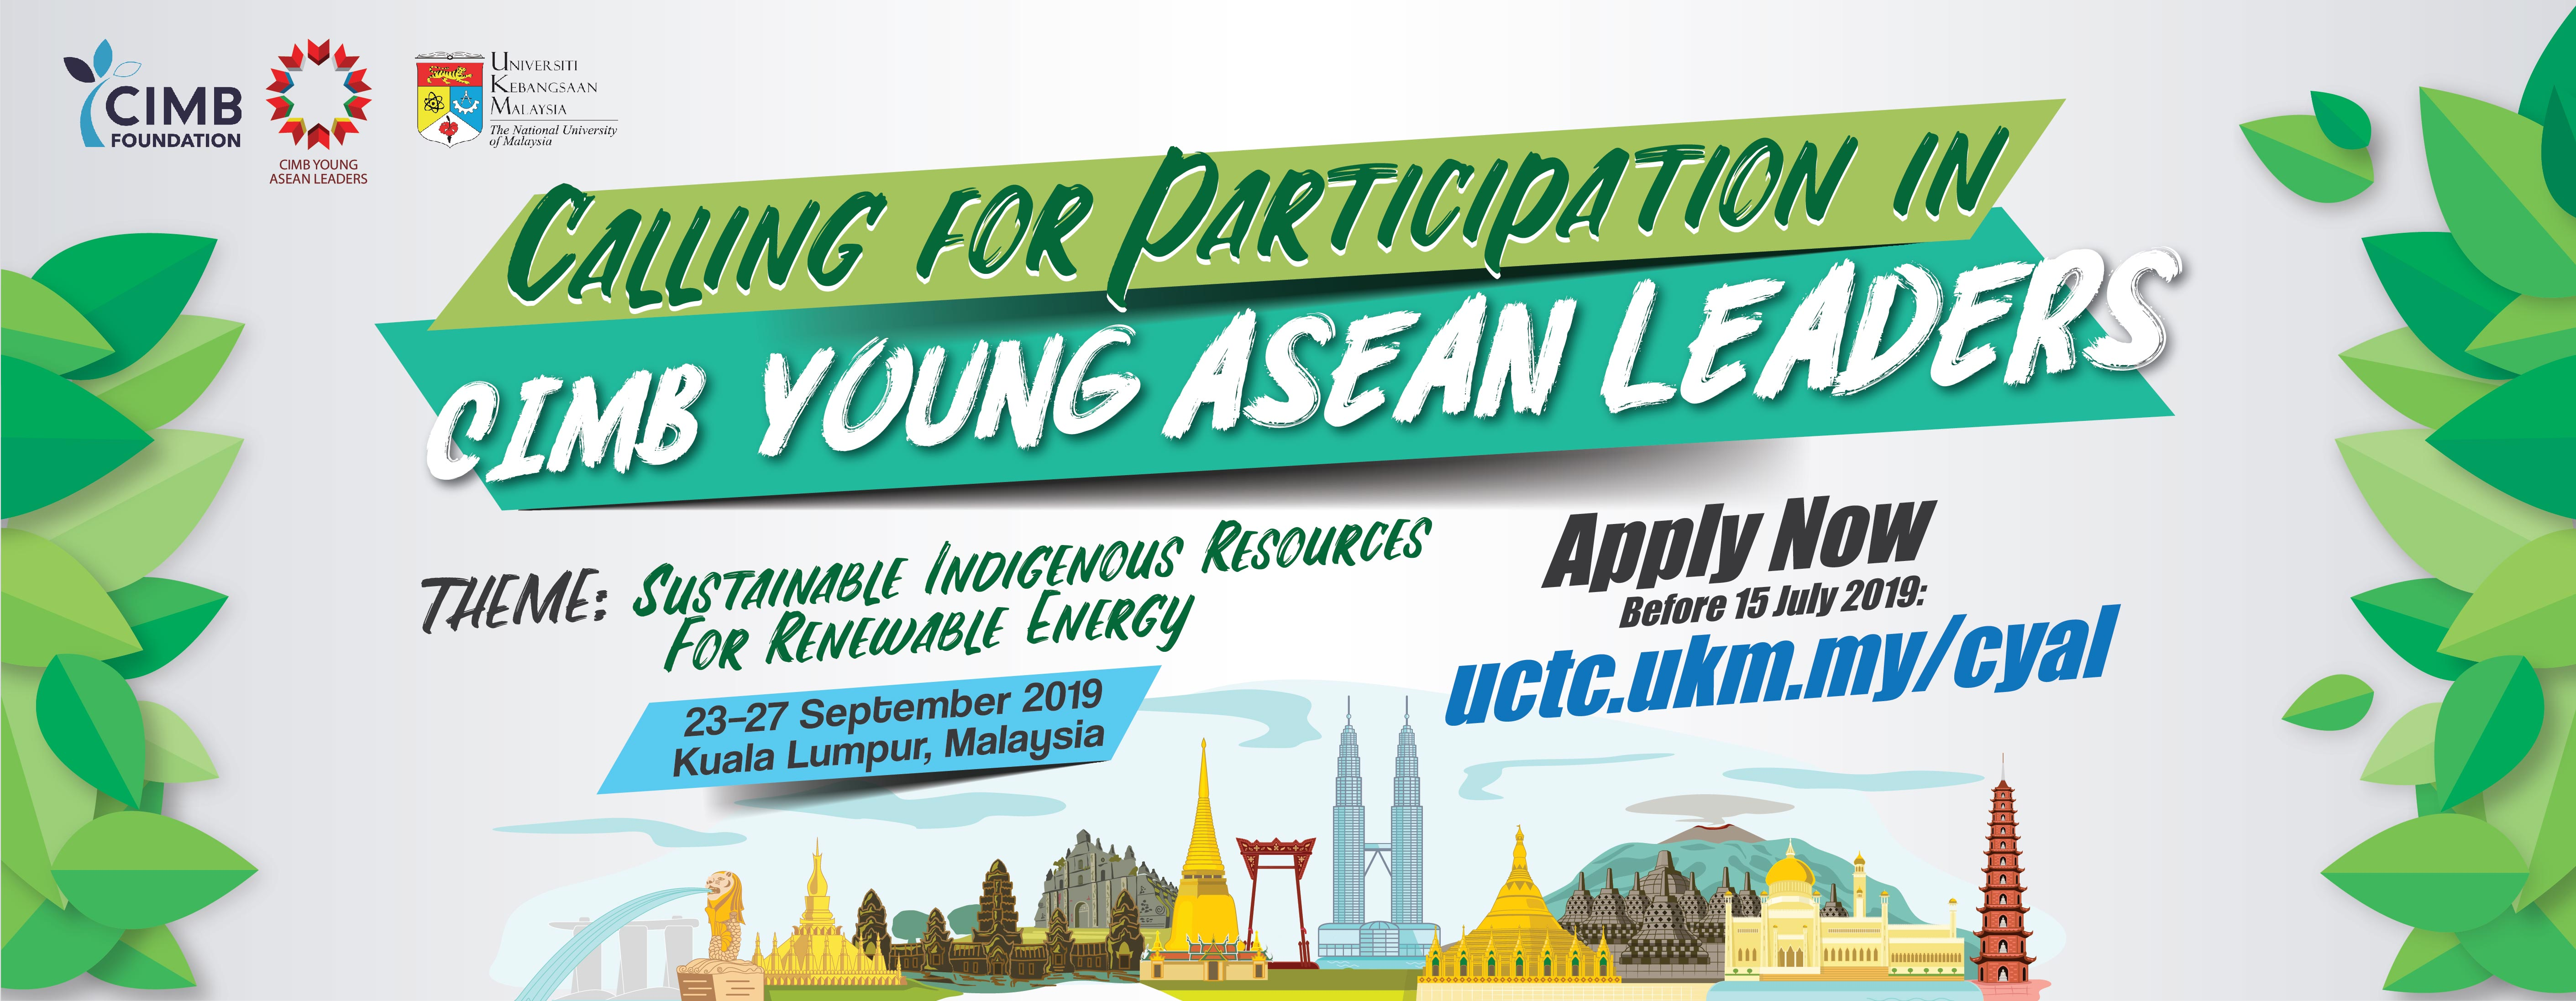 Calling for Young ASEAN Leaders 2019